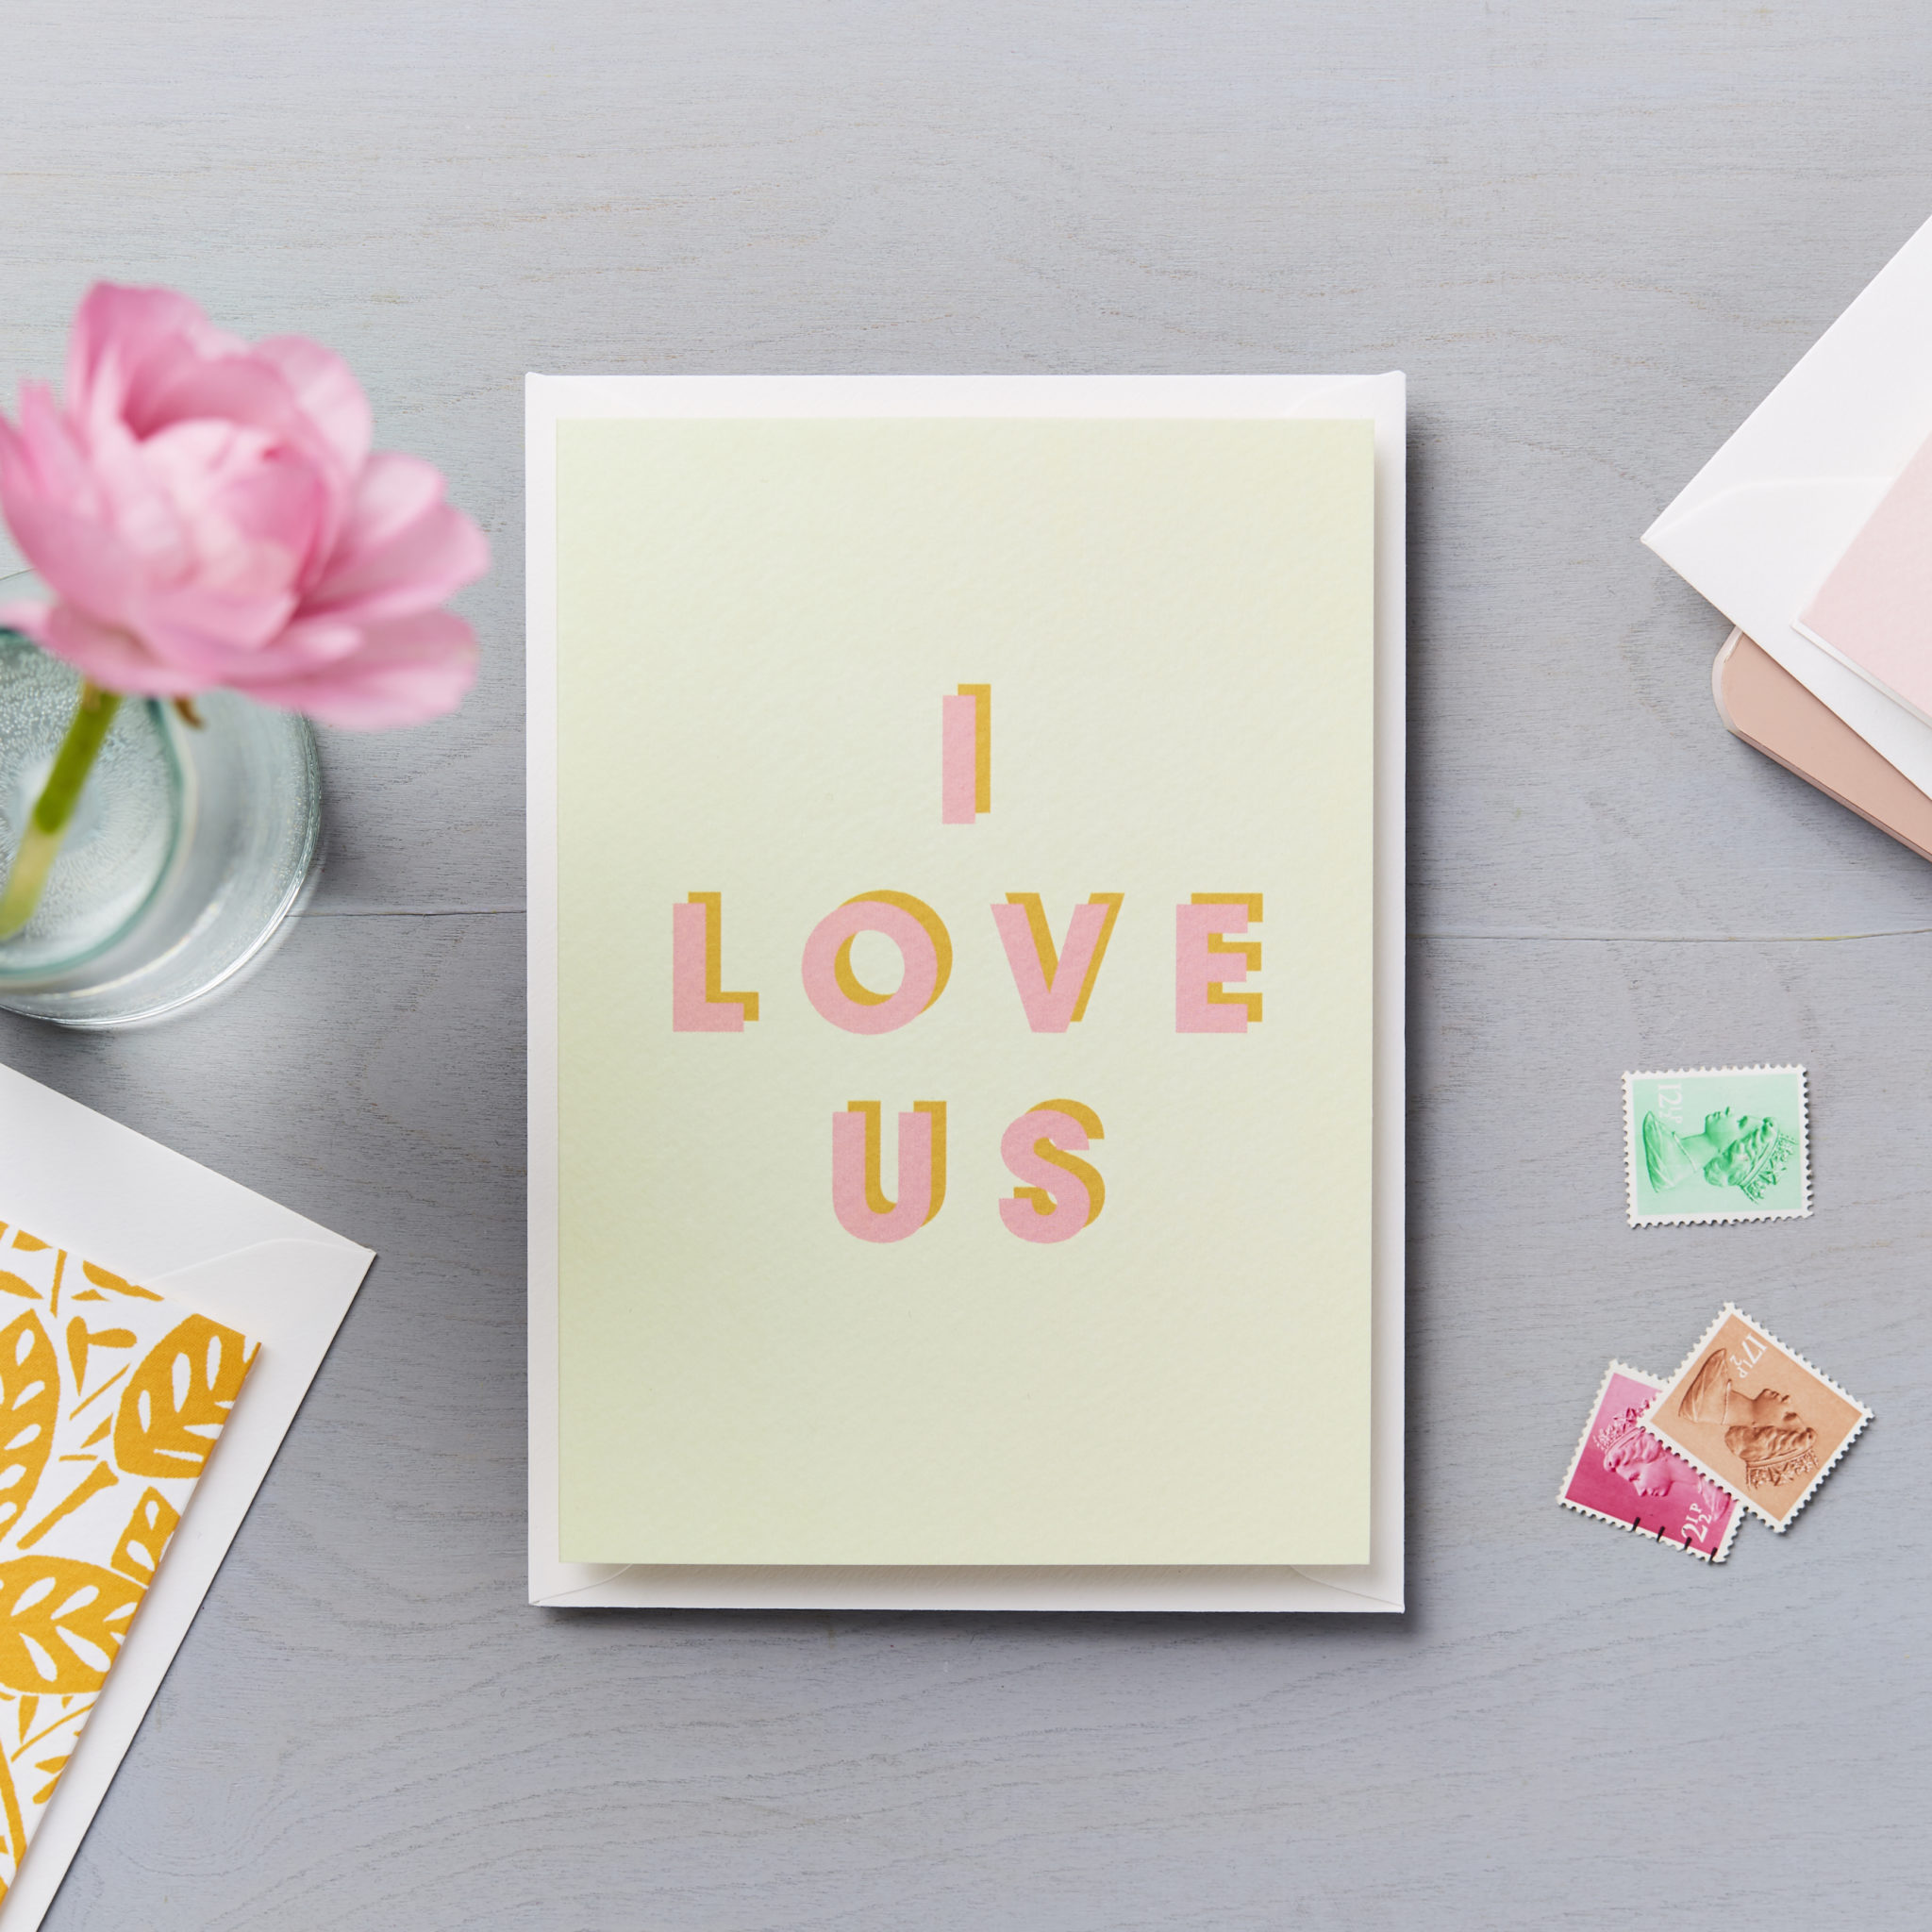 I love us - pink and orange typographic card